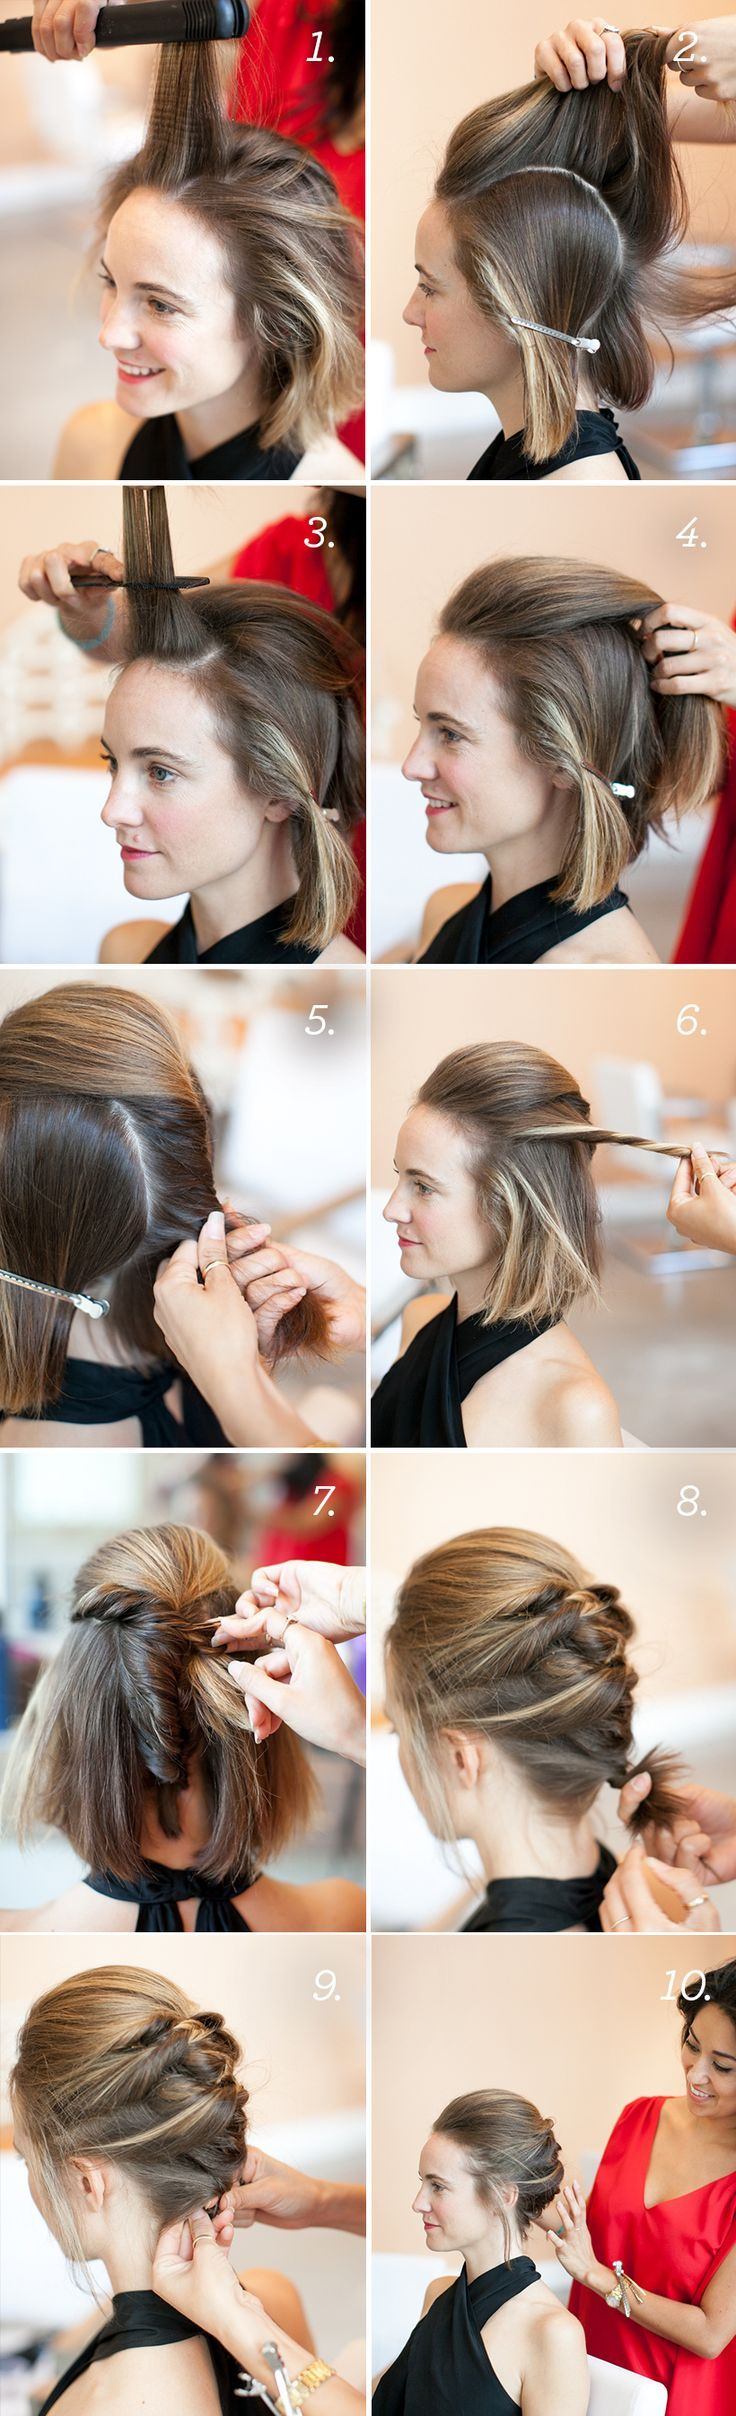 Updo for short hair hair u beauty pinterest short hair shorts